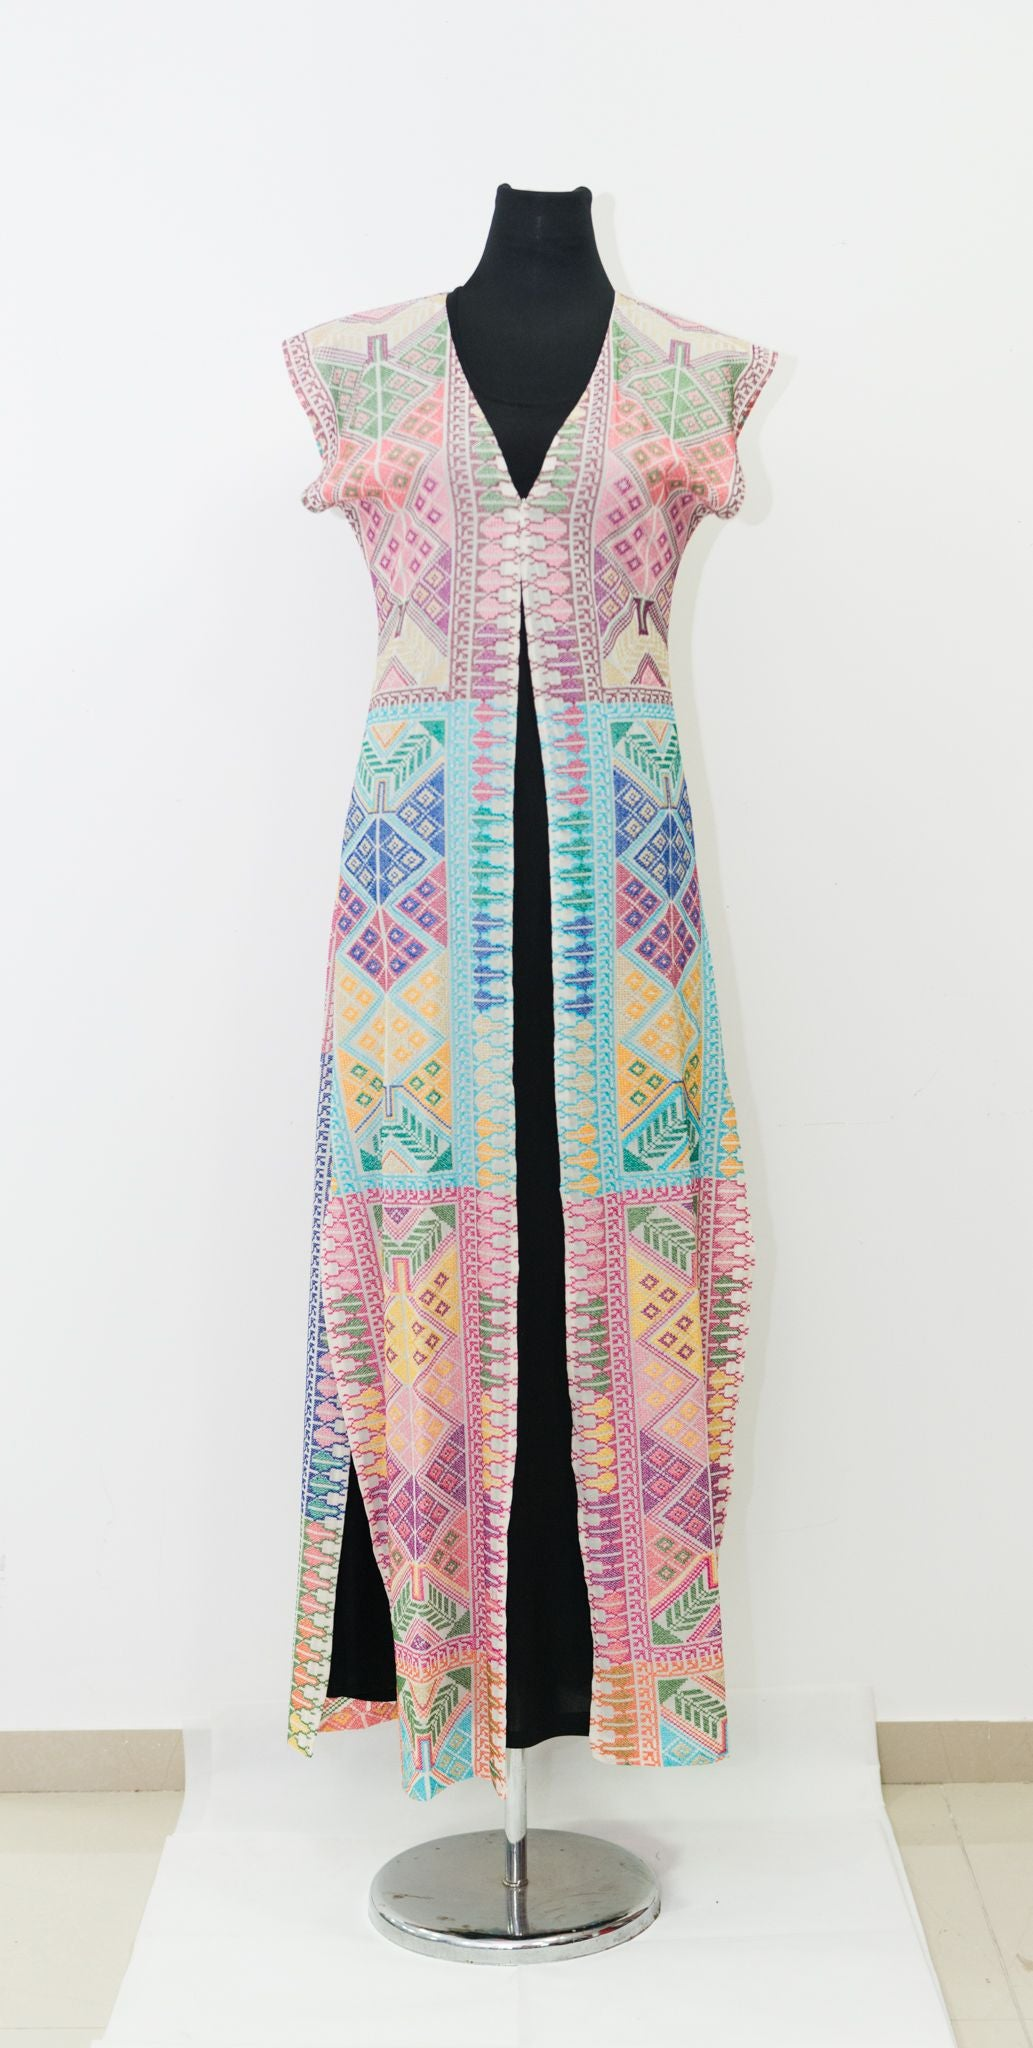 Multicolor embroidered vest with stunning embroidery - Falastini Brand